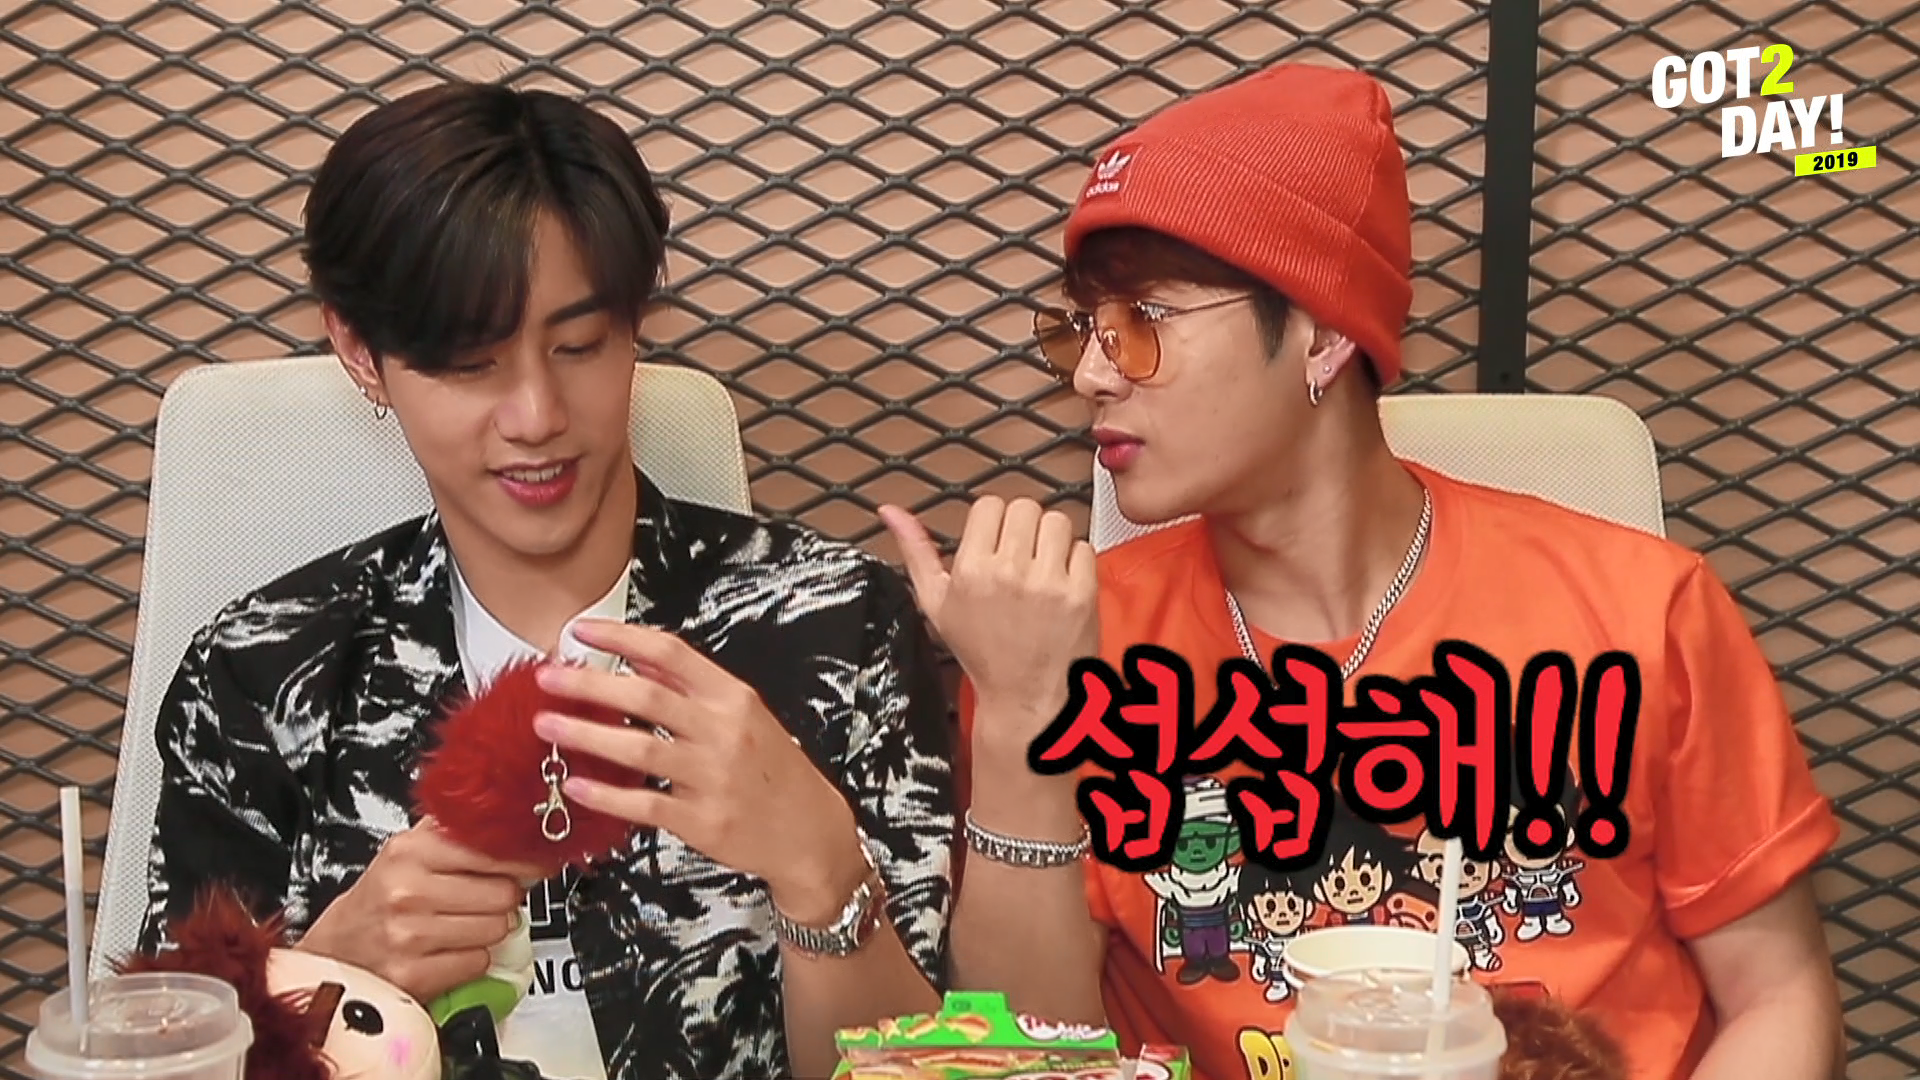 [GOT2DAY 2019] 06. Mark & Jackson